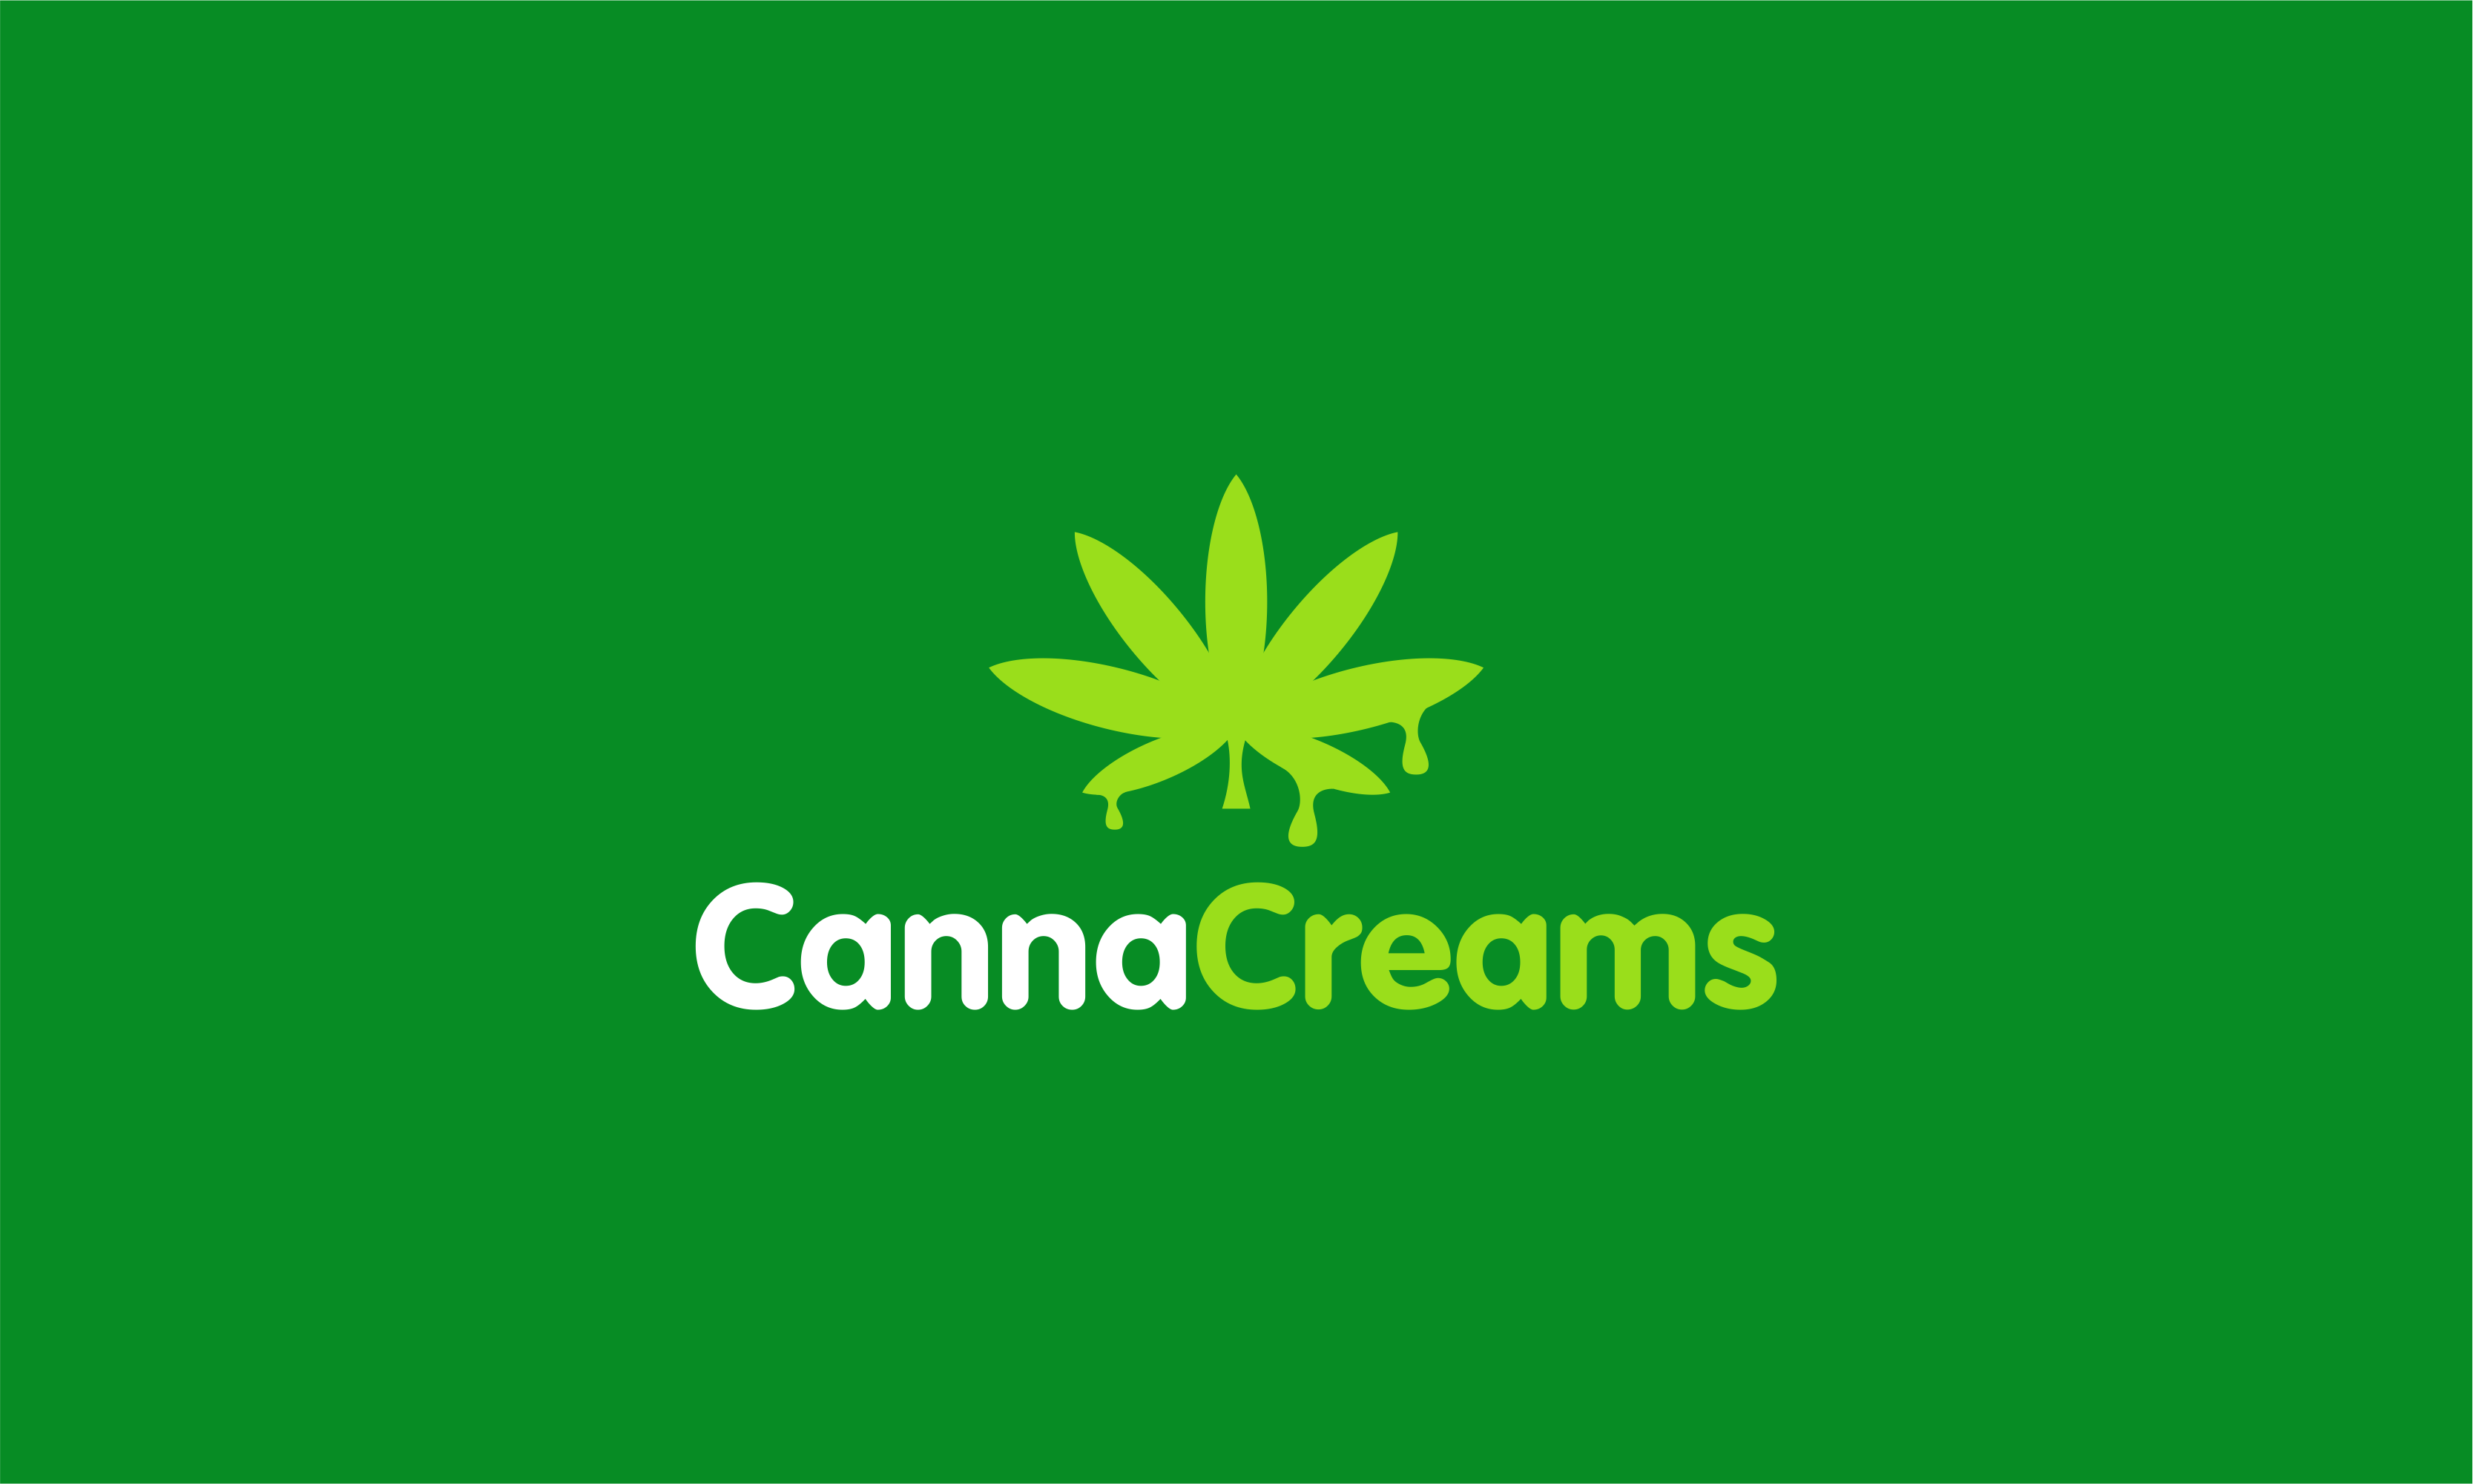 Cannacreams